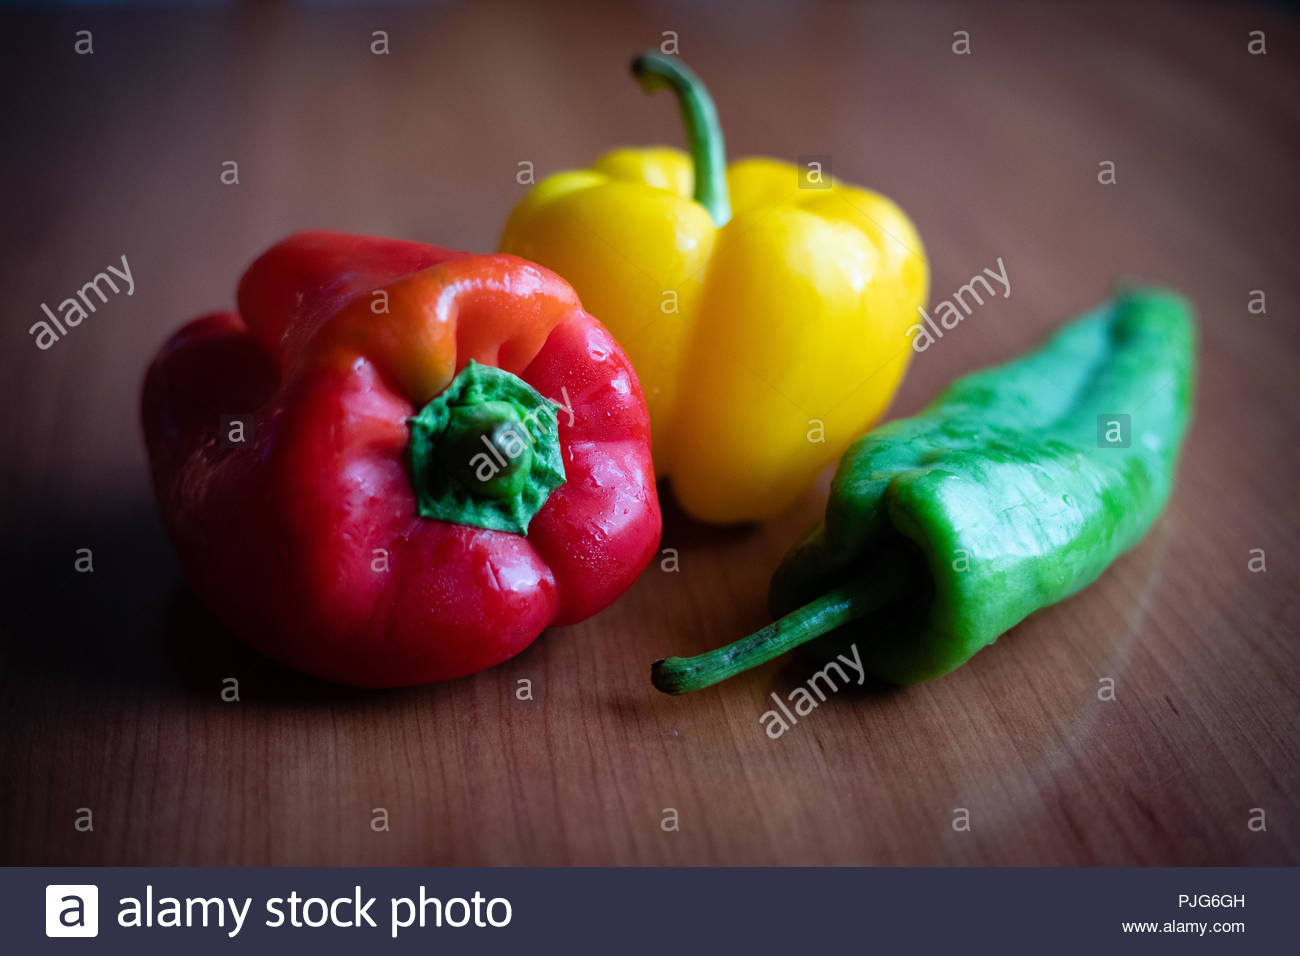 Red, yellow and green pepper on wooden table - Stock Image